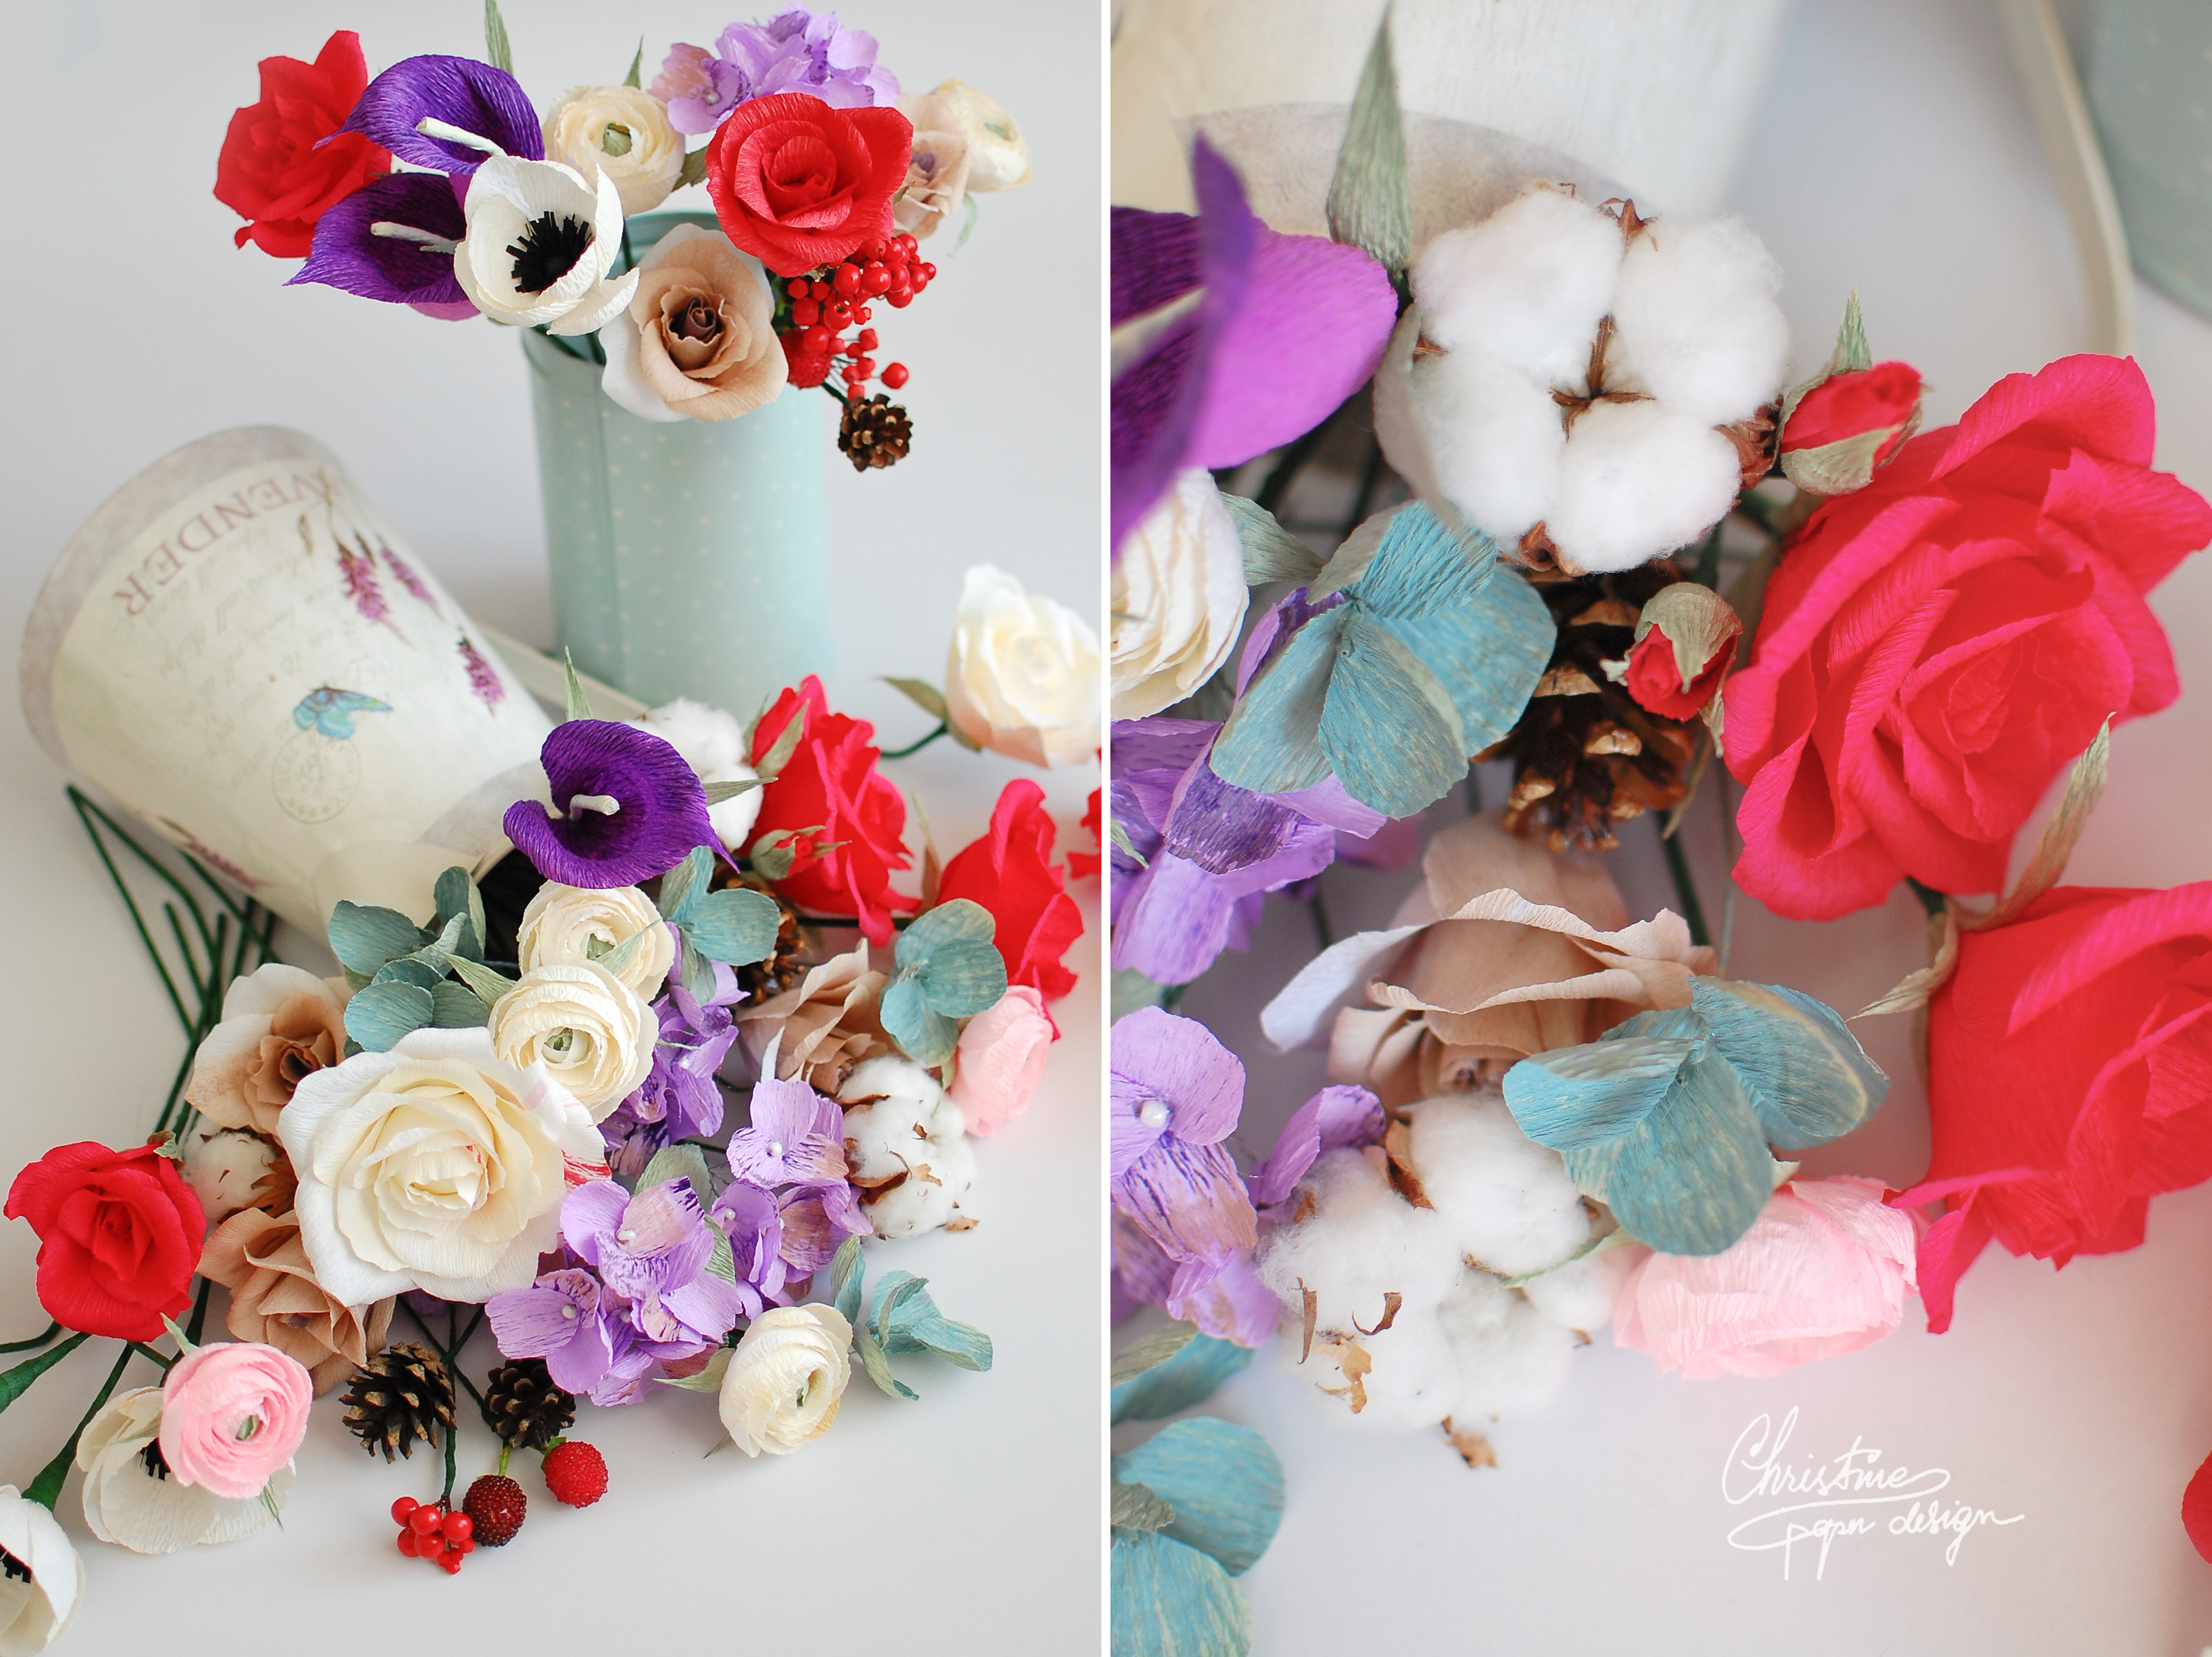 Christine paper design - paper flowers (2)